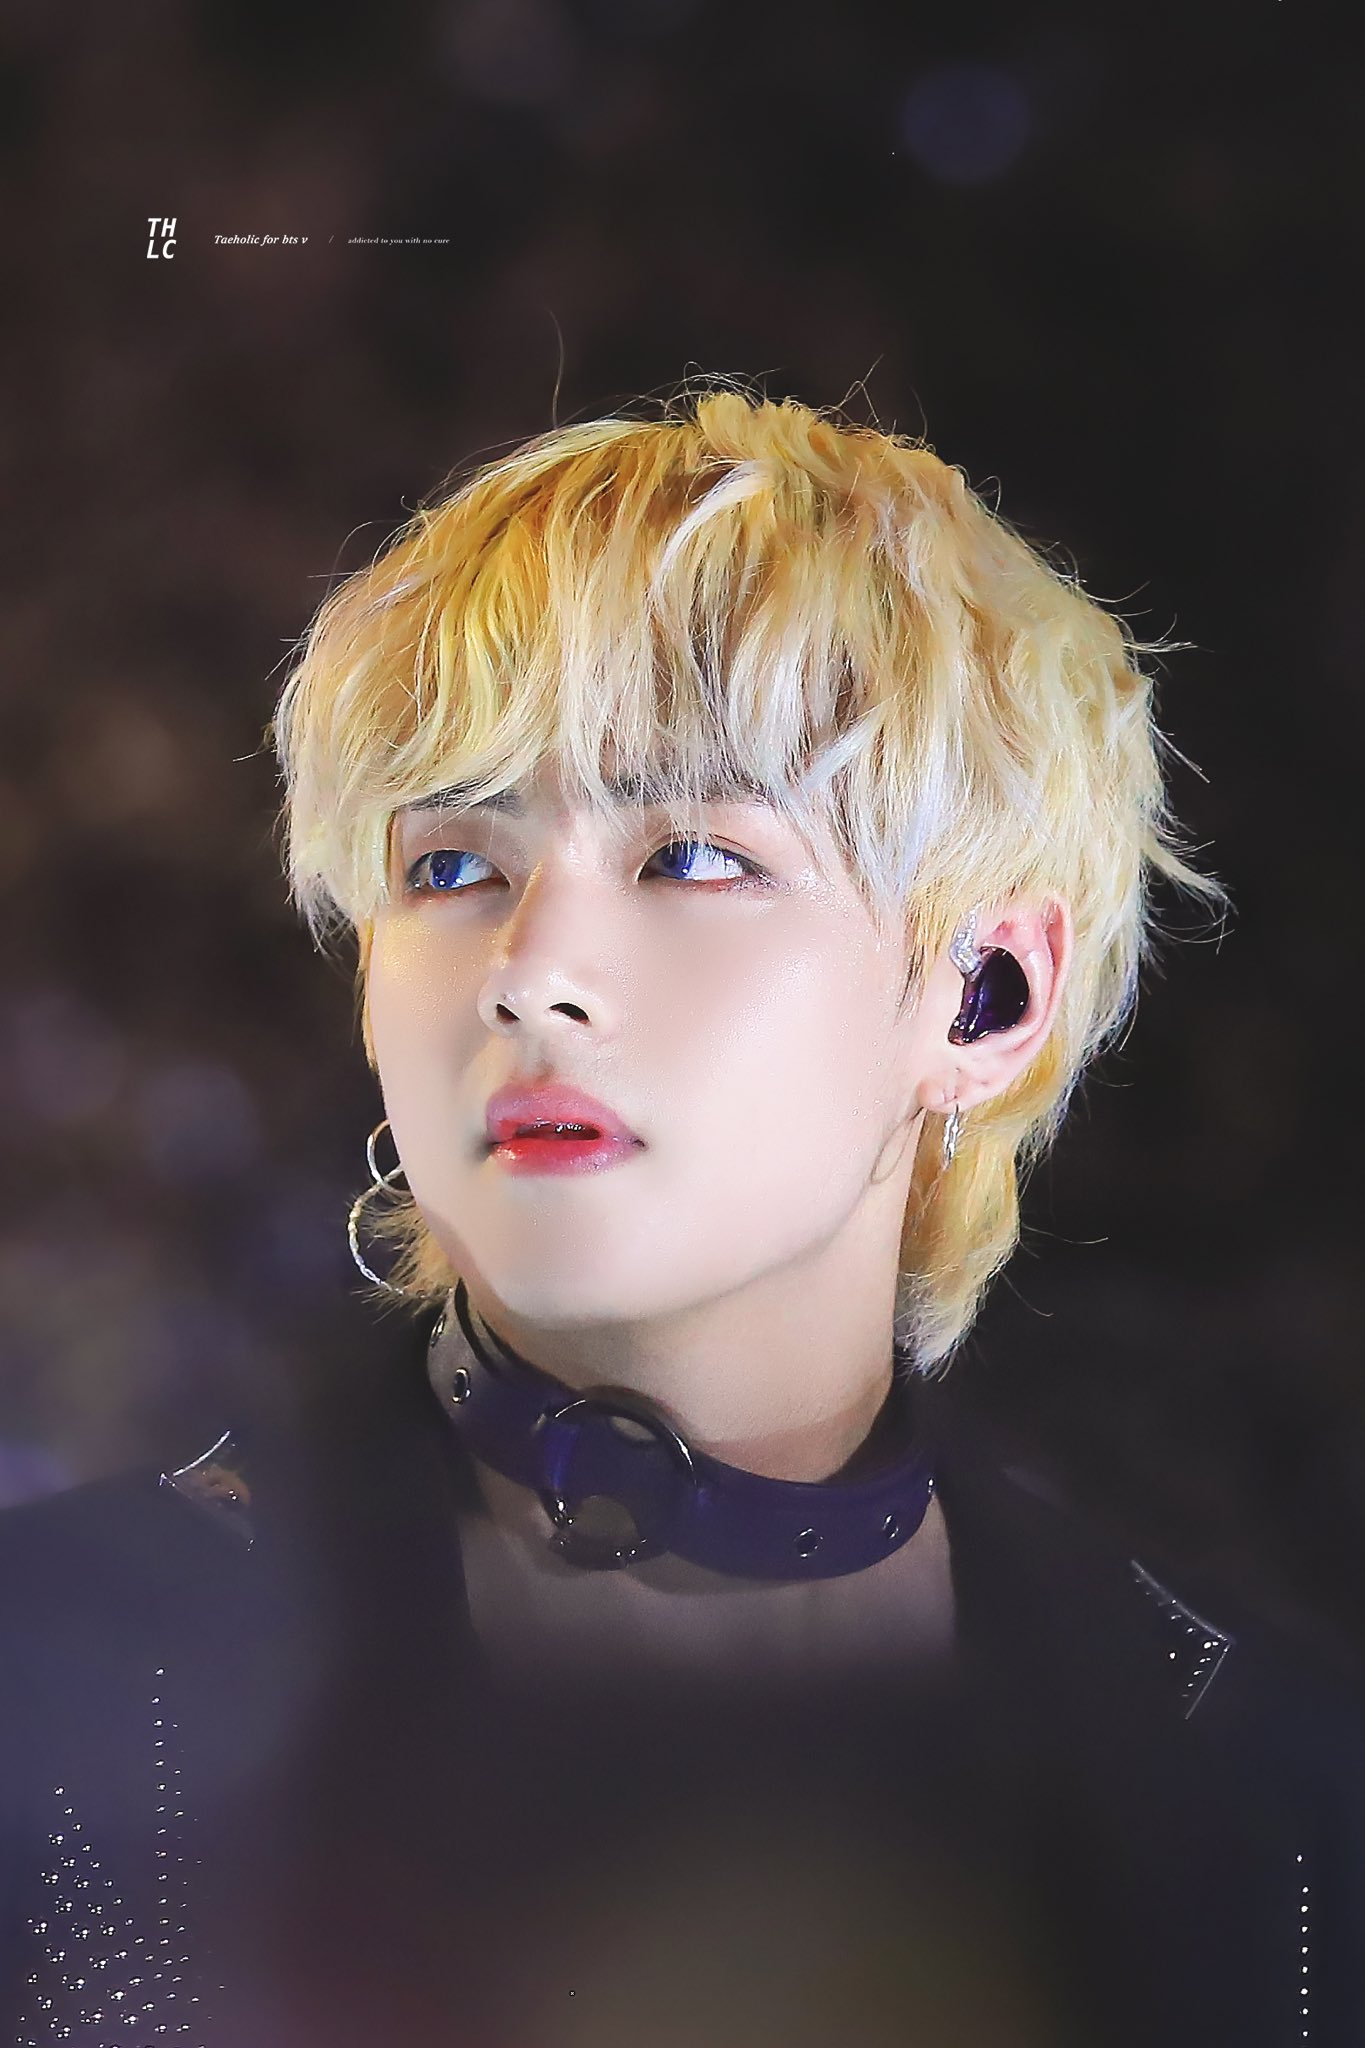 V Bts Images Taehyung Hd Wallpaper And Background Photos 41429229